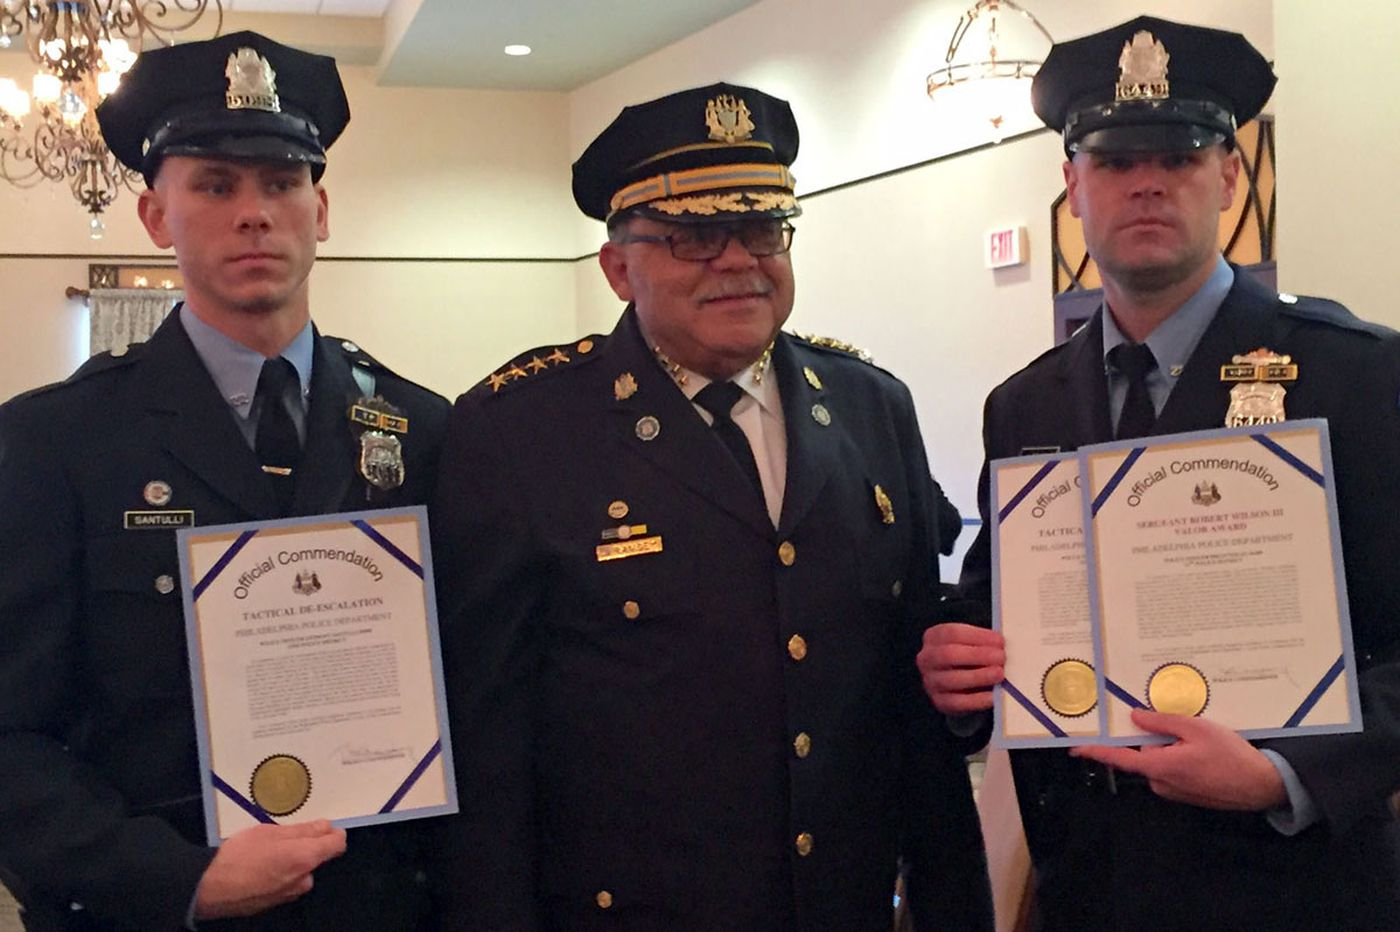 Cops honored for talking their way out of danger